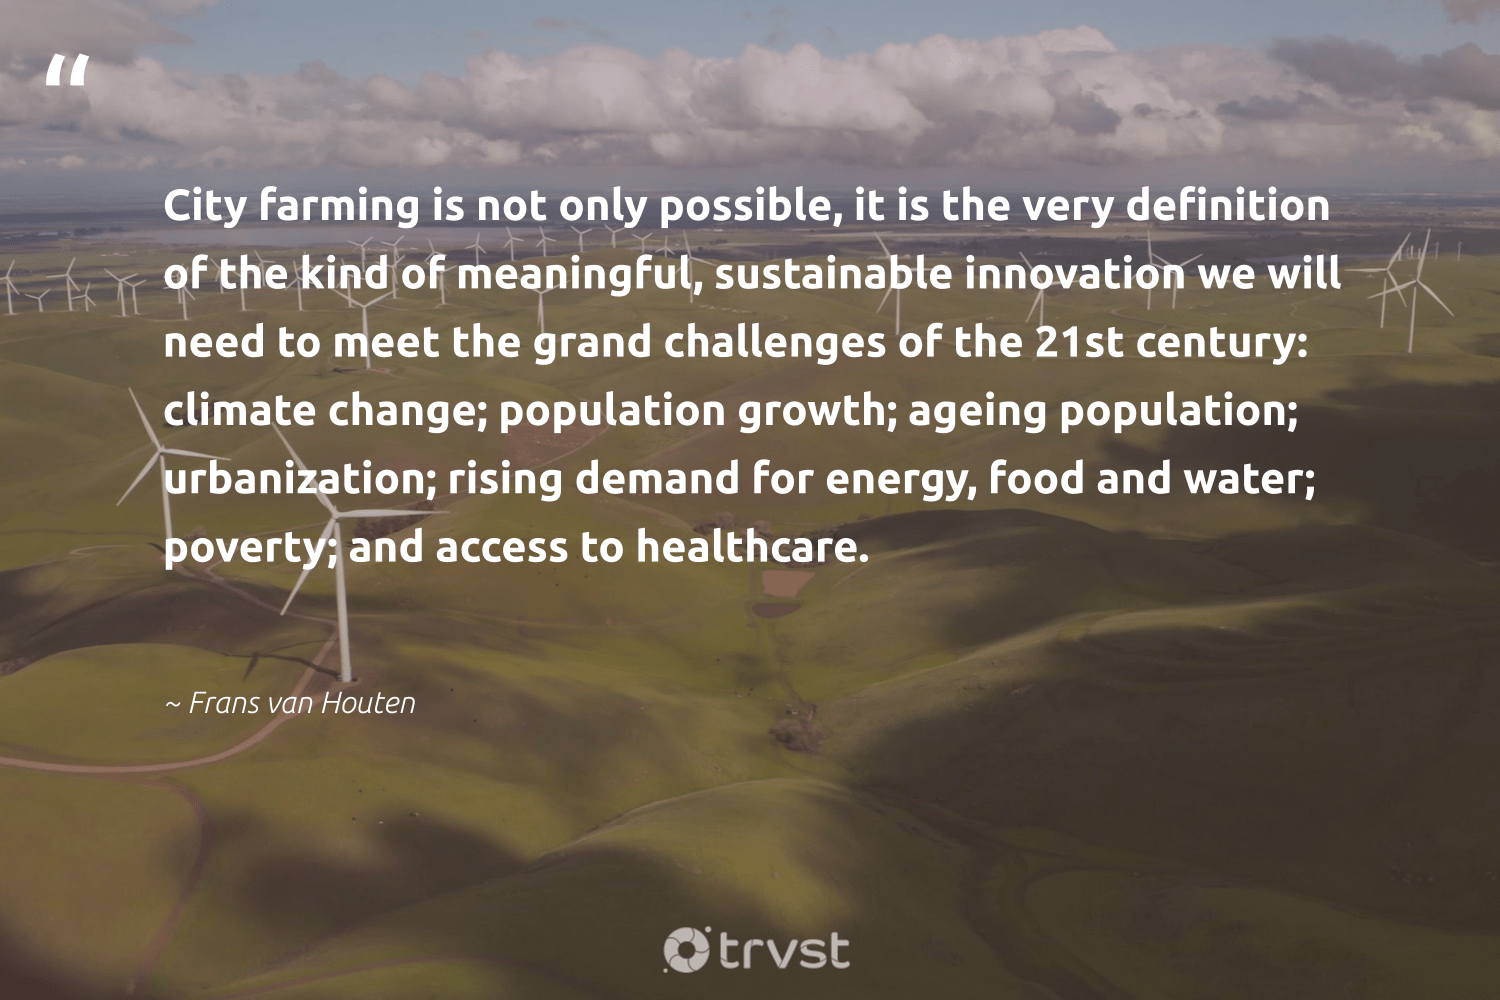 """""""City farming is not only possible, it is the very definition of the kind of meaningful, sustainable innovation we will need to meet the grand challenges of the 21st century: climate change; population growth; ageing population; urbanization; rising demand for energy, food and water; poverty; and access to healthcare.""""  - Frans van Houten #trvst #quotes #climatechange #sustainable #energy #climate #food #globalwarming #climatefight #changetheworld #co2 #climateaction"""